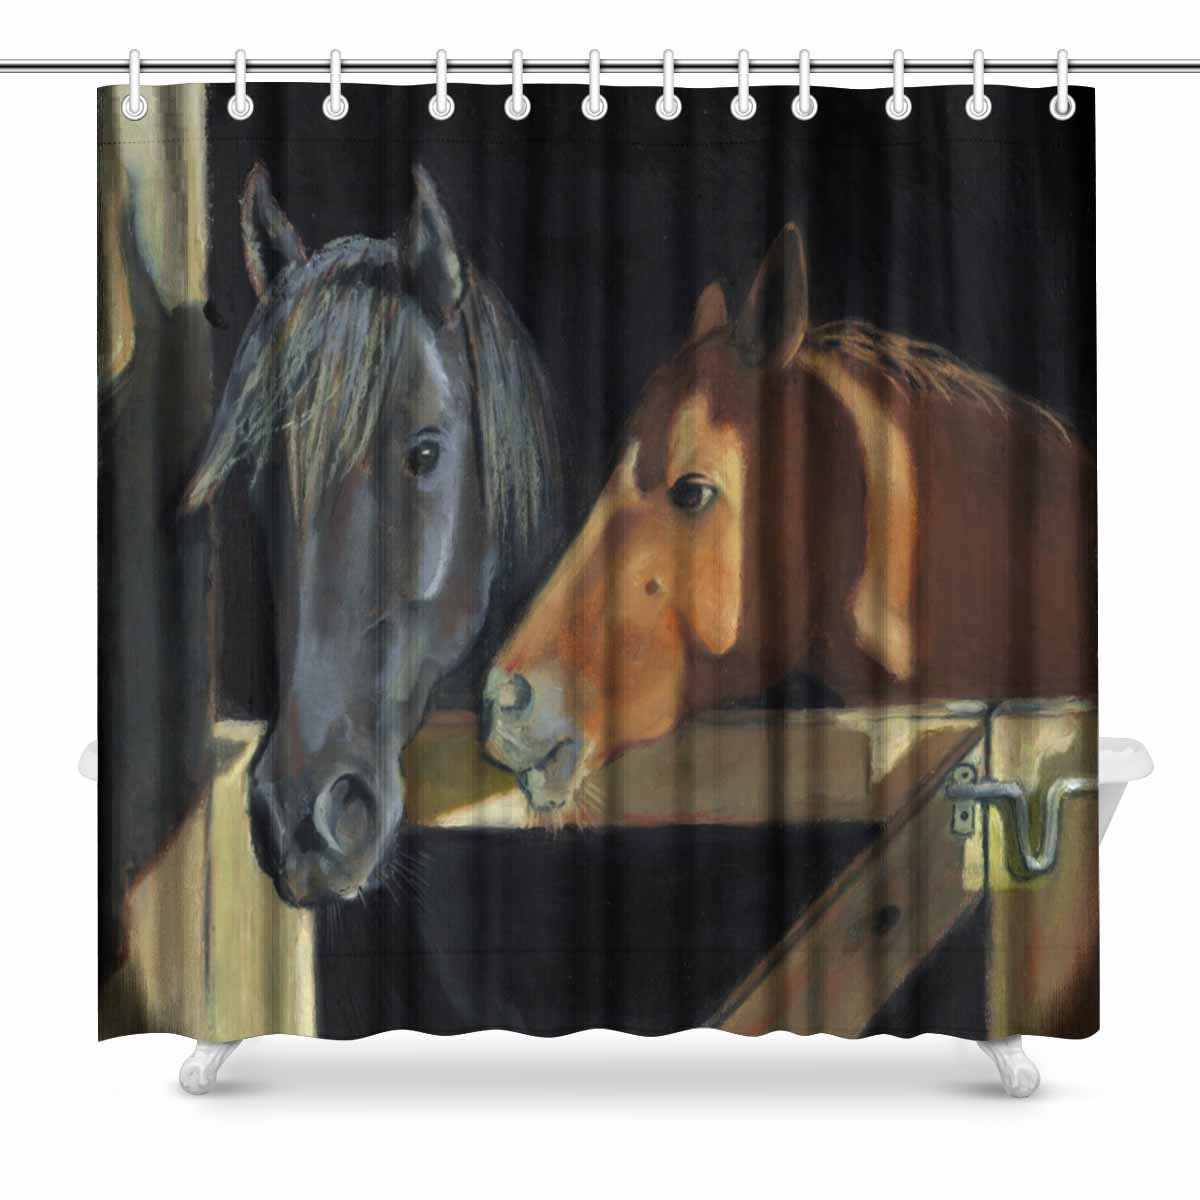 Aplysia Two Horses At The Open Barn Door Fabric Bathroom